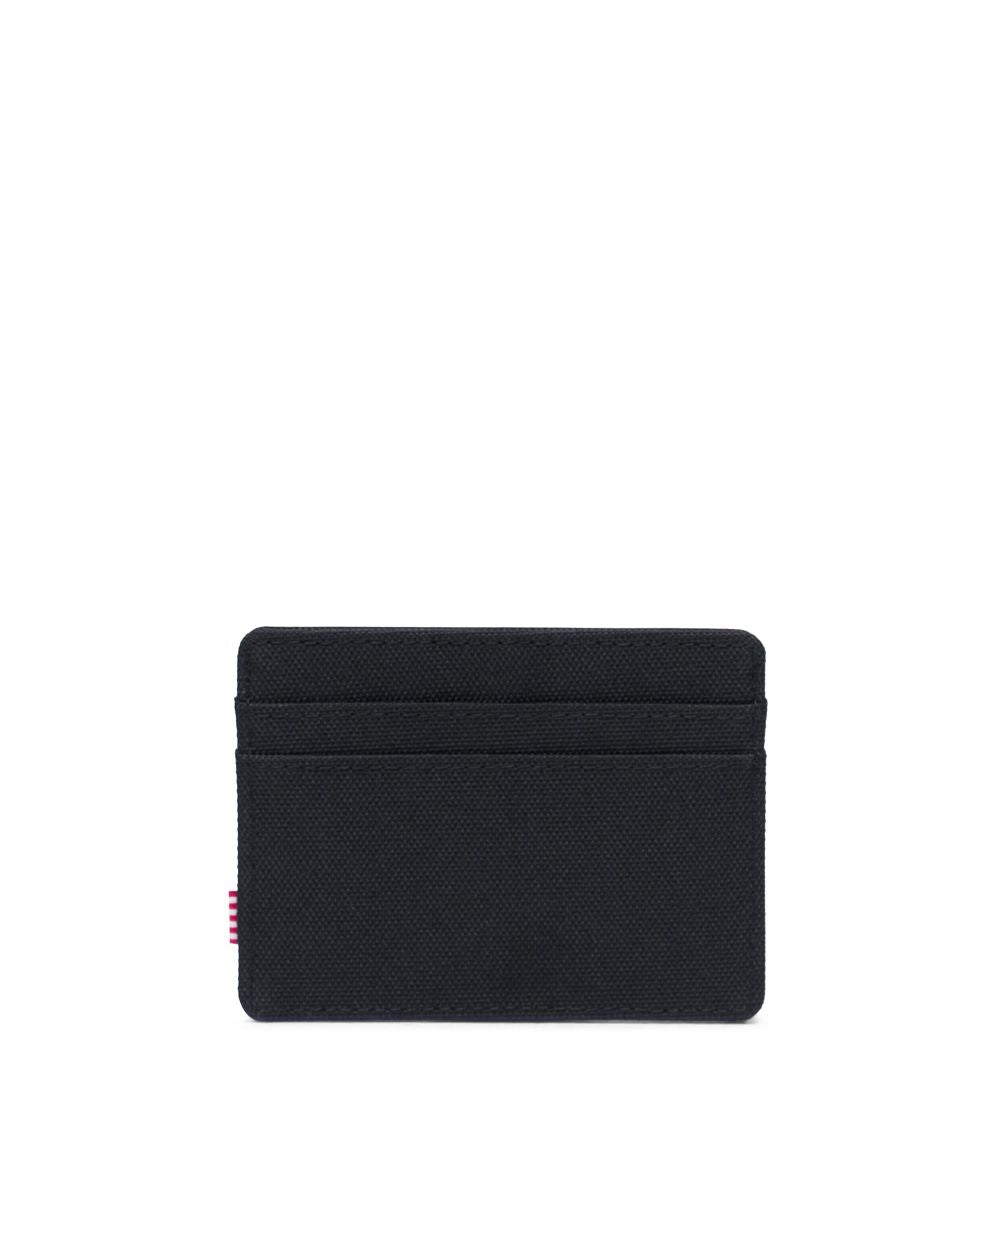 HERSCHEL WALLETS CHARLIE WALLET - BLACK/BLACK